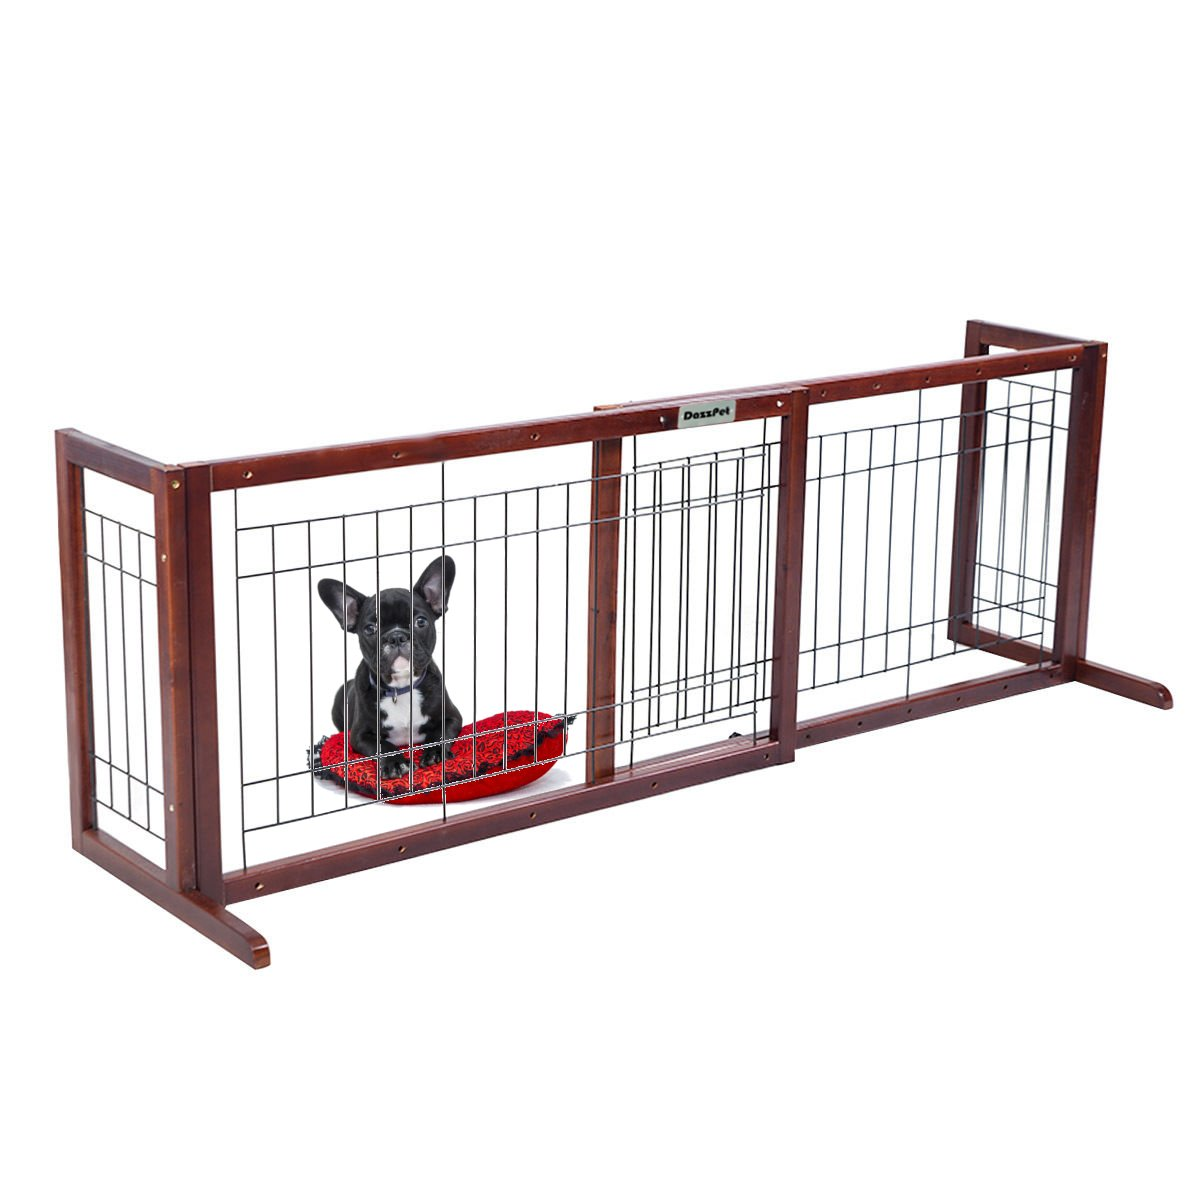 DazzPet Free Standing Pet Gates | Extra Wide Indoor Small Dog Gate | Expandable Puppy Safety Gate | Wooden Long Door 40'' to 71'' Adjustable Inside Doggy Fence